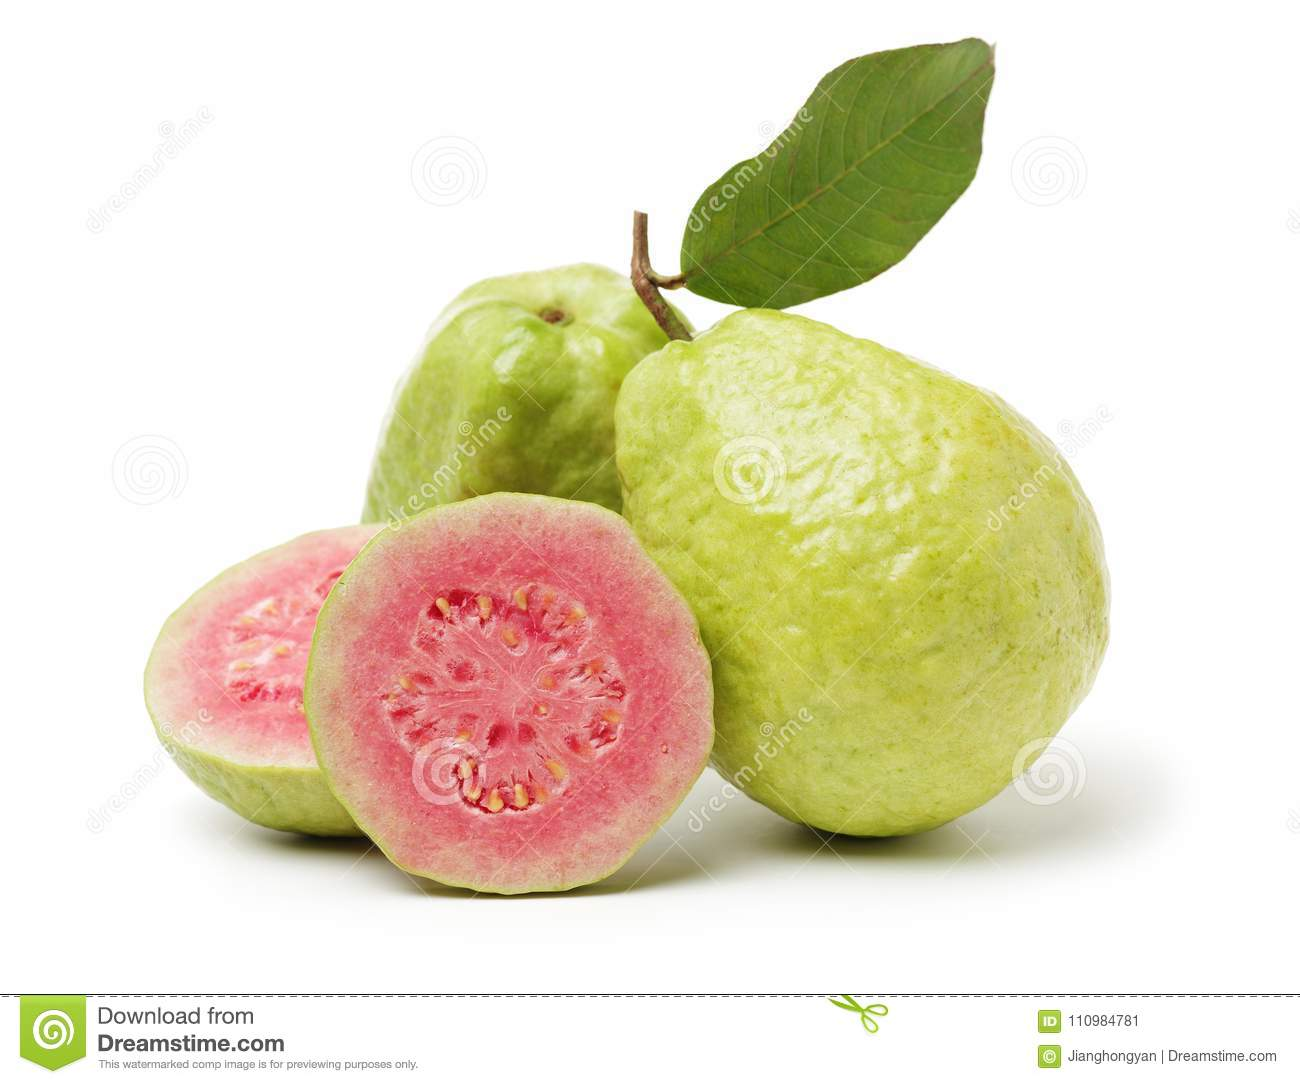 Guava Fruit Images Hd Download